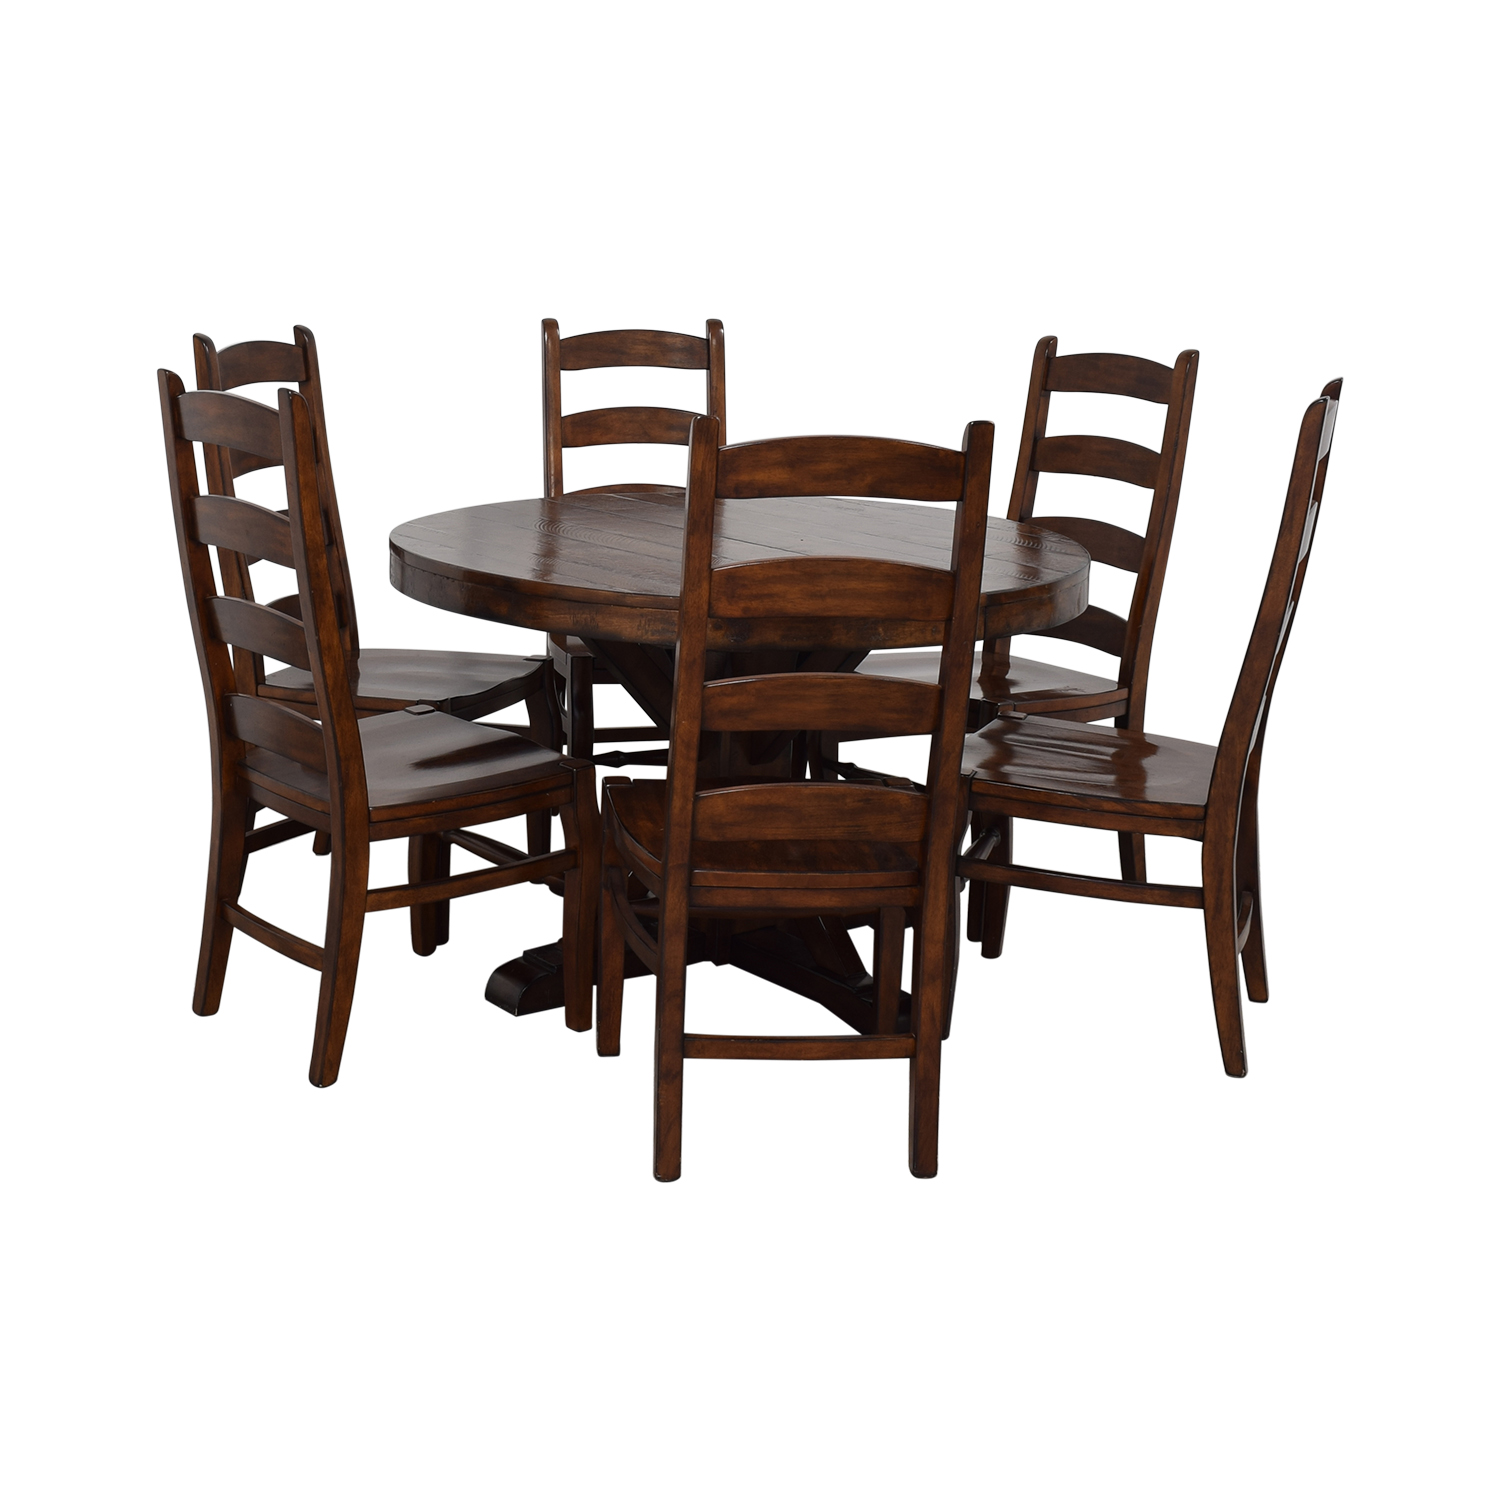 Pottery Barn Pottery Barn Benchwright Extending Pedestal Dining Set on sale